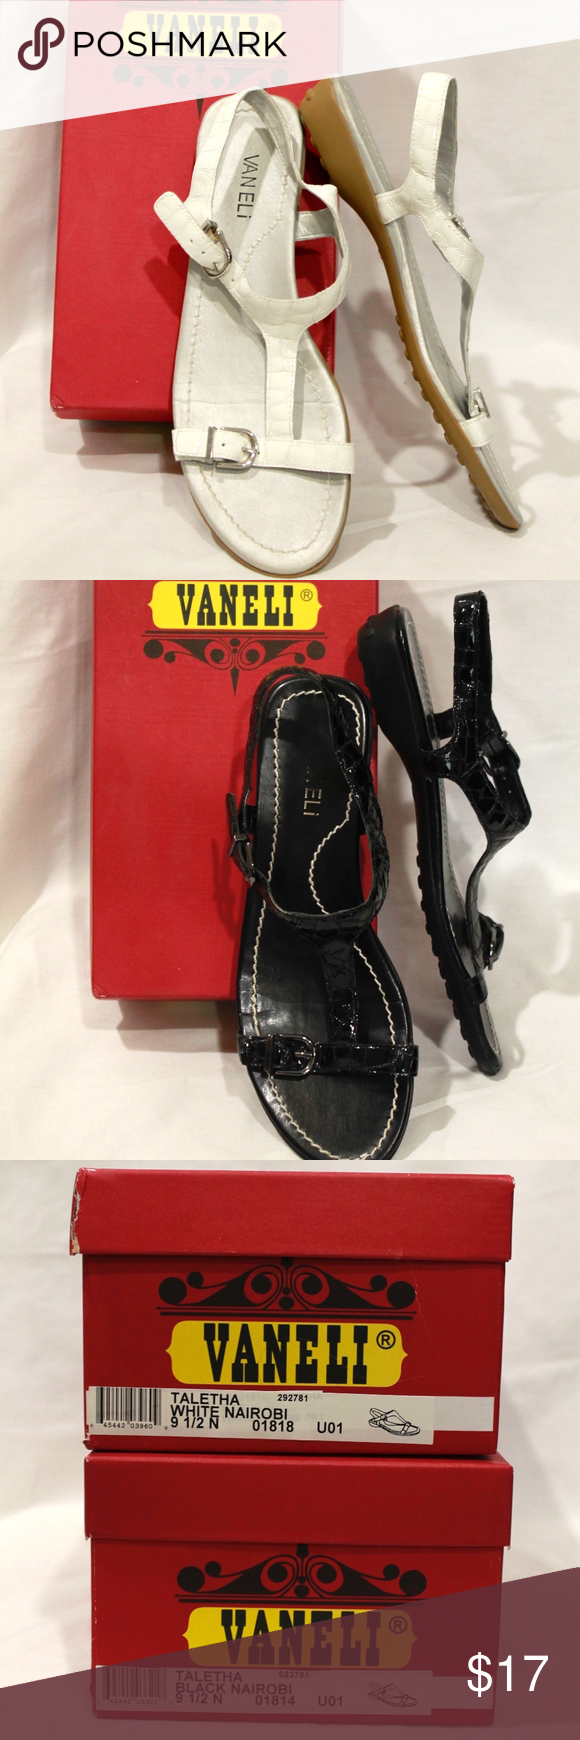 7abcd3dfb68 VANELi Sandals with Box Nordstrom Brand Sandals Both pairs gently used! Vaneli  Shoes Sandals